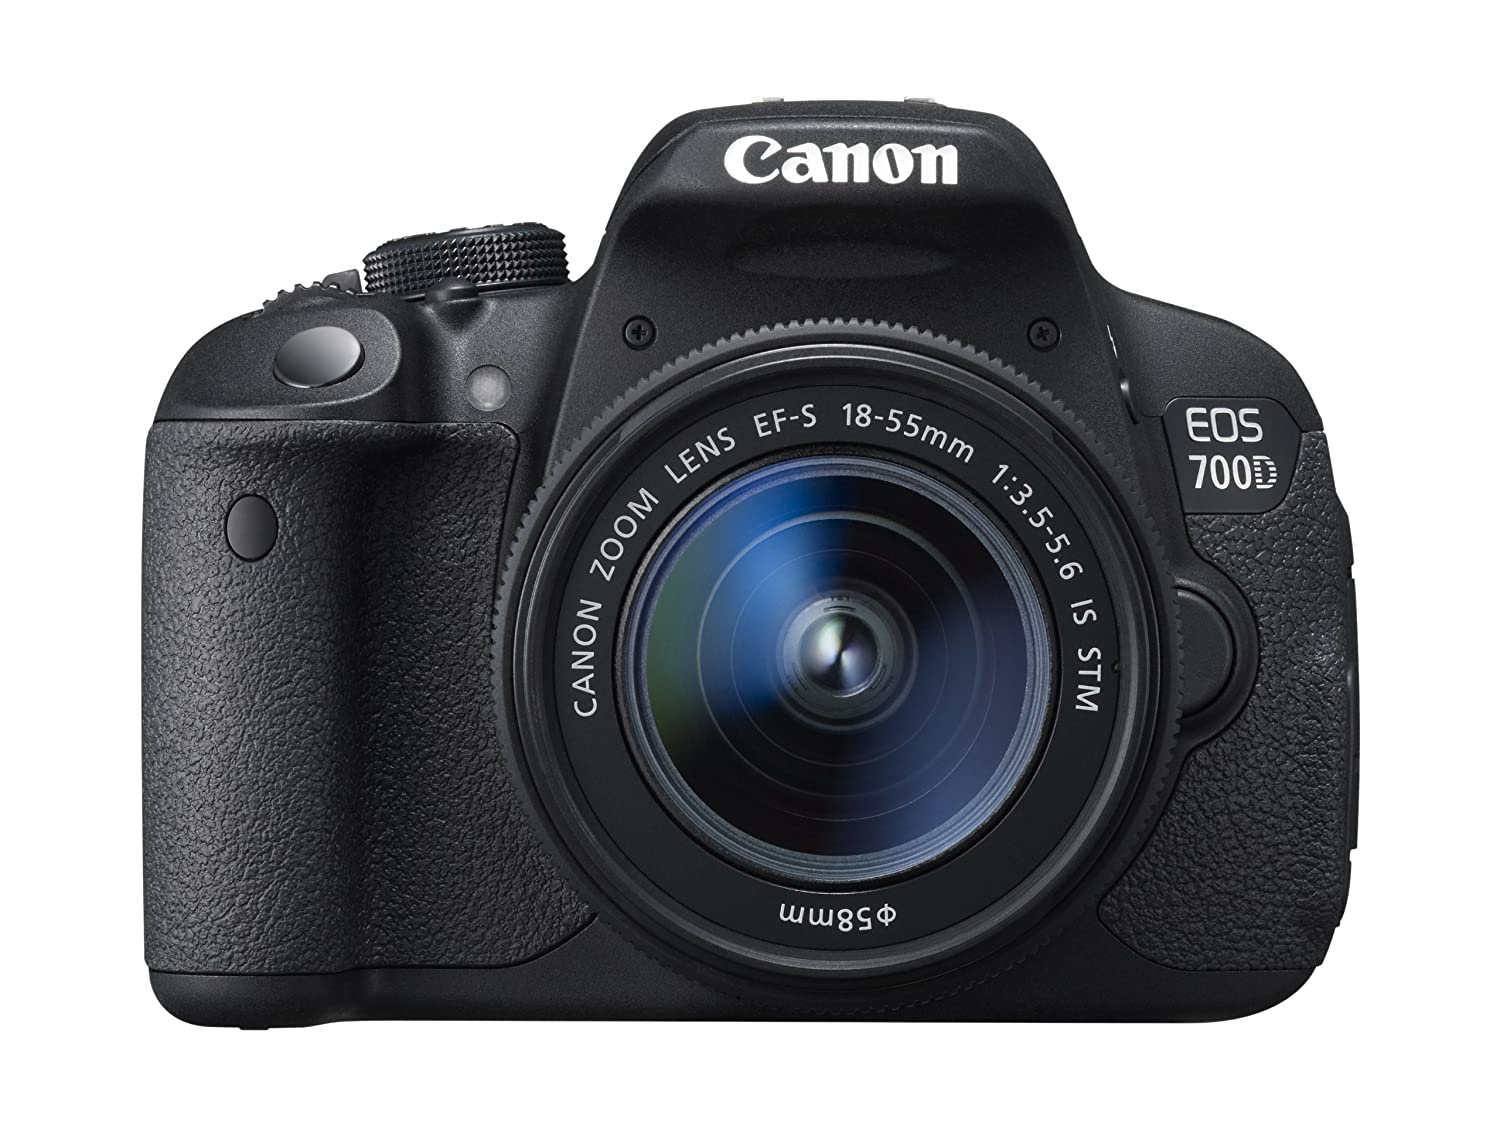 Camera Dslr Camera Price In Uk amazon co uk digital slrs electronics photo canon eos 700d slr camera ef s 18 55 mm f3 5 6 is stm lens mp cmos sensor 3 inch lcd